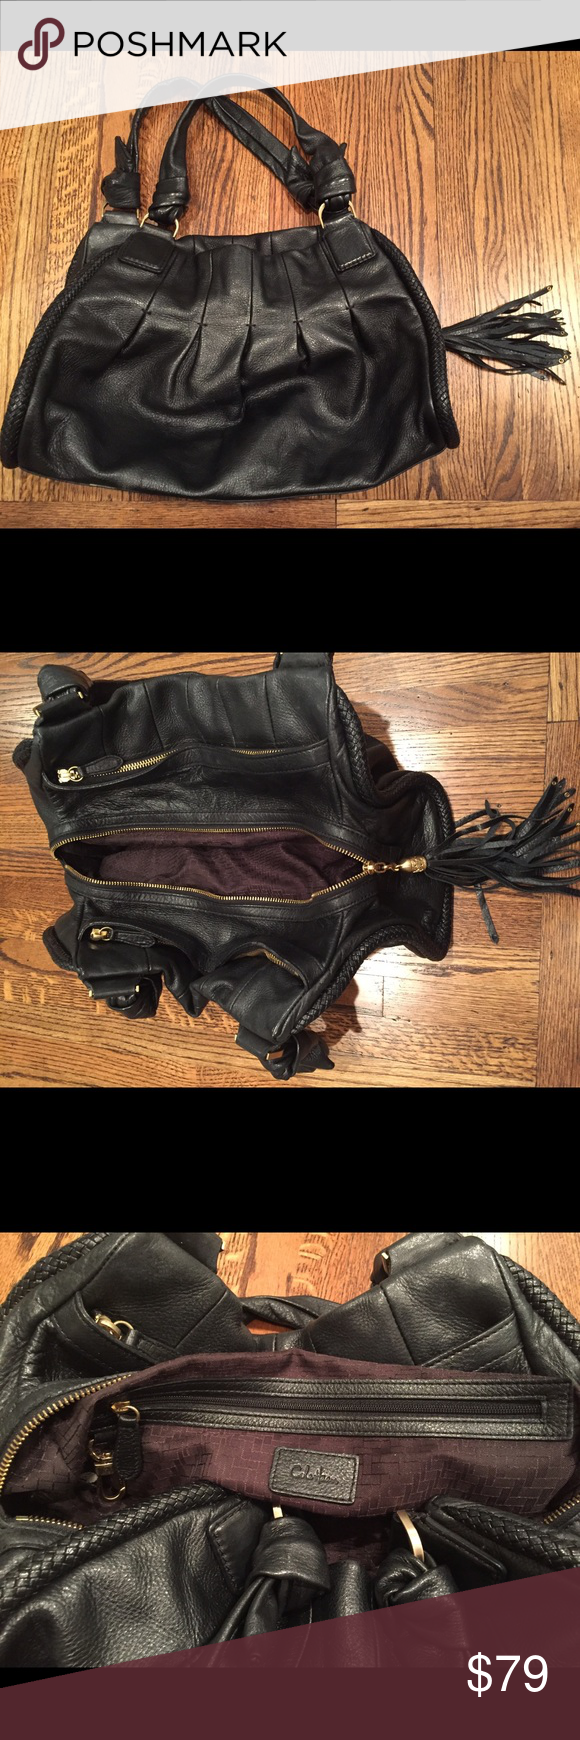 Cole Haan black double strap hobo handbag This Cole Haan black double strap satchel handbag with tassel zipper and braided accents is so soft! Brushed gold accents, 3 zipping interior sections & interior pockets make this a well organized bag. Excellent used condition. Cole Haan Bags Hobos